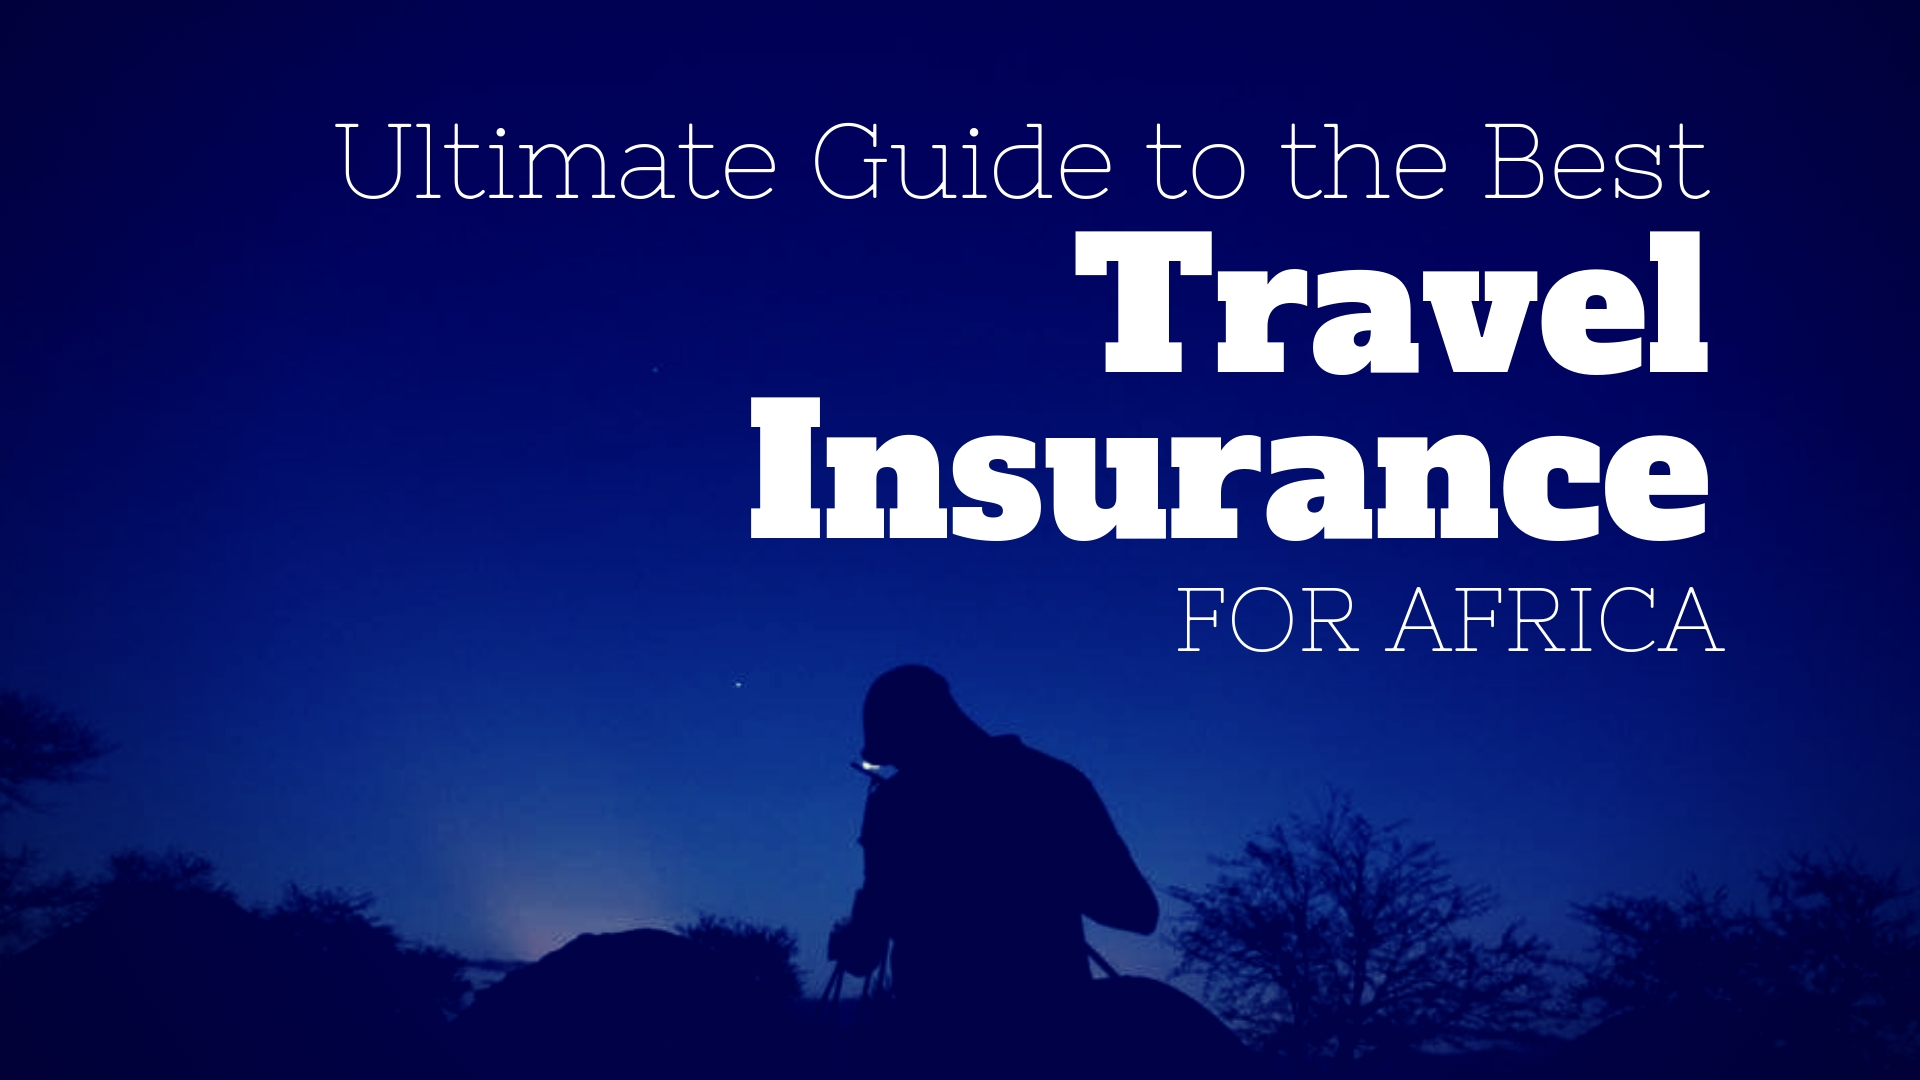 TRAVEL INSURANCE FOR AFRICA